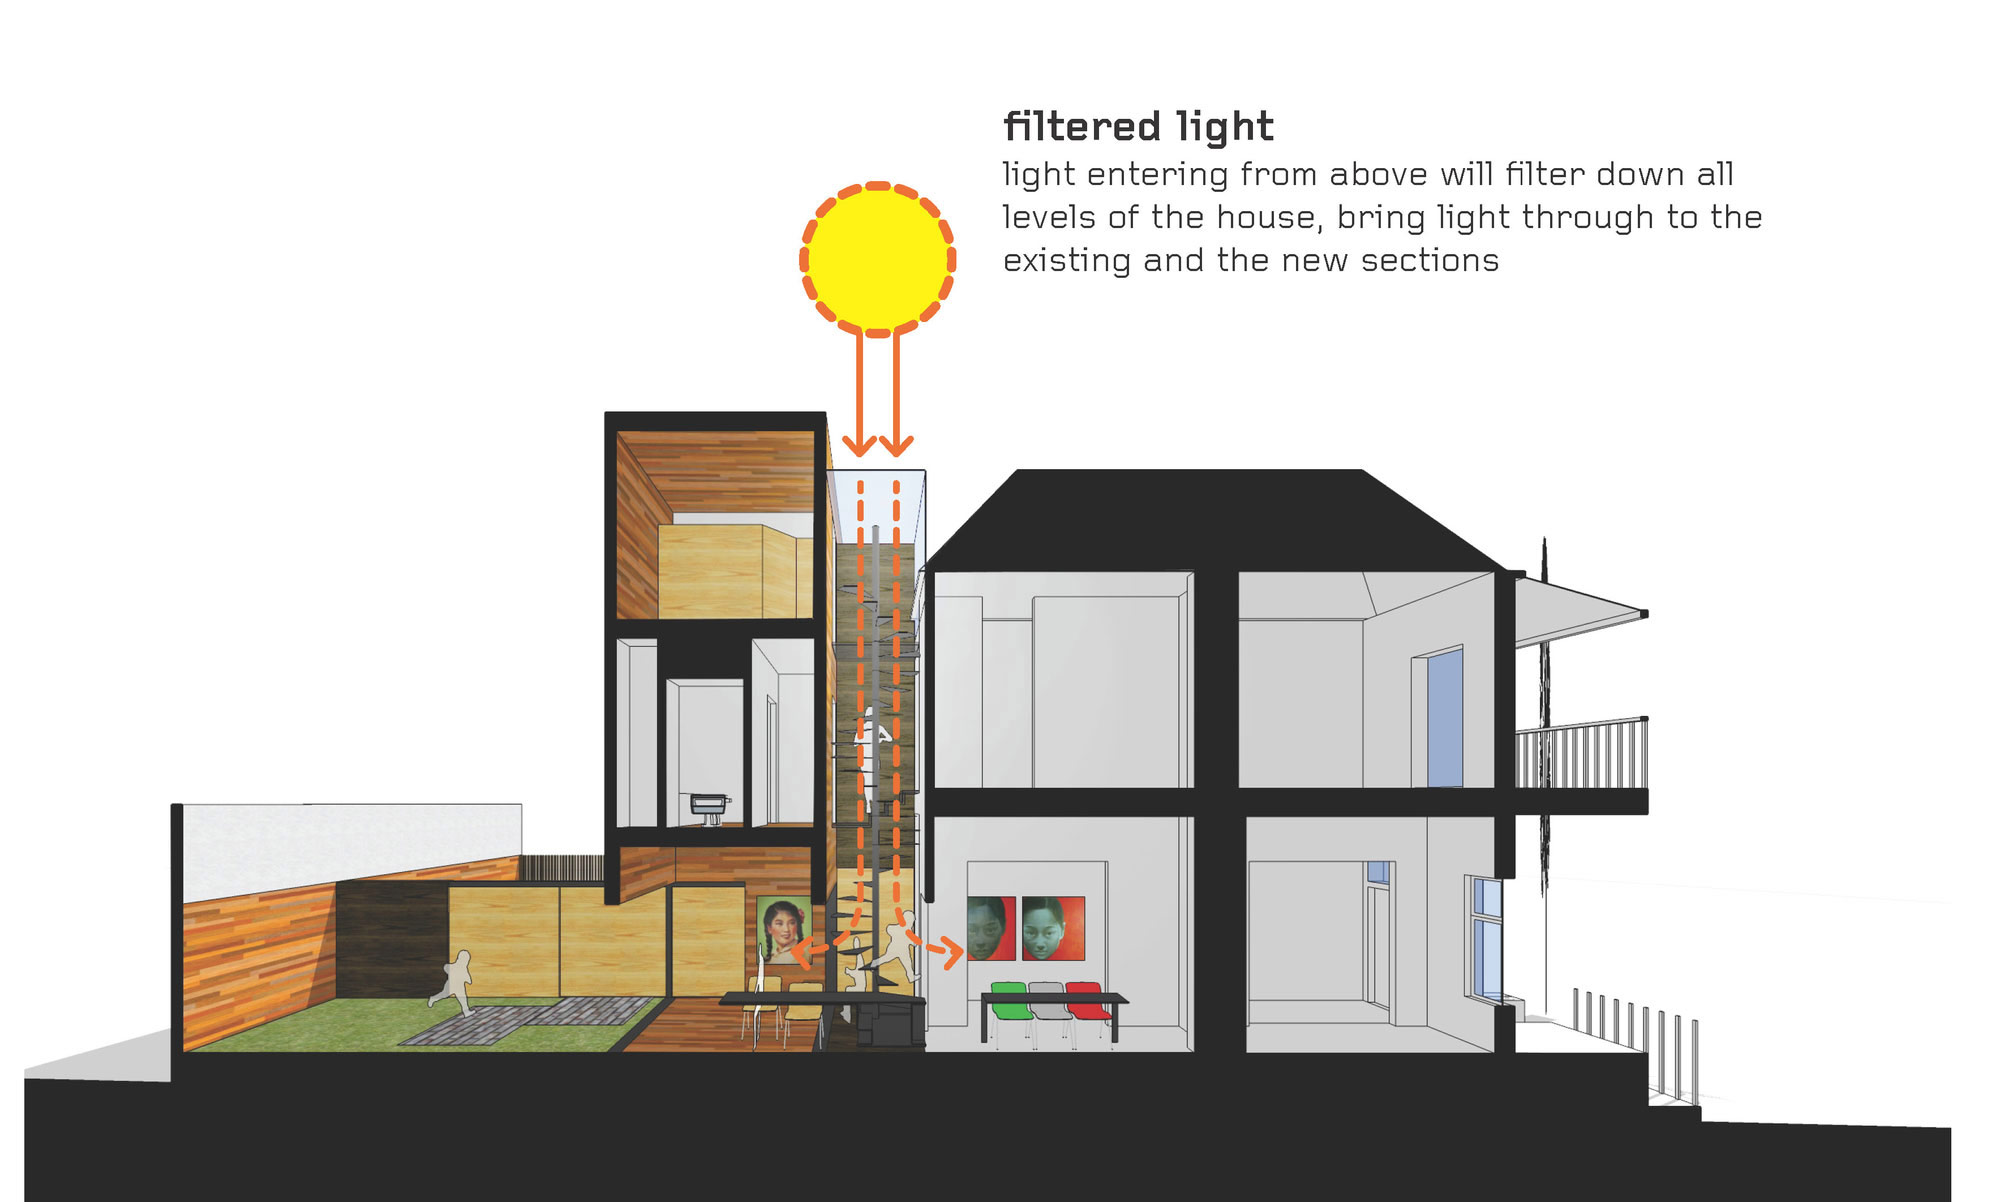 Filtered Light Diagram, Two-Home Extension Within a Single Building in Richmond, Australia